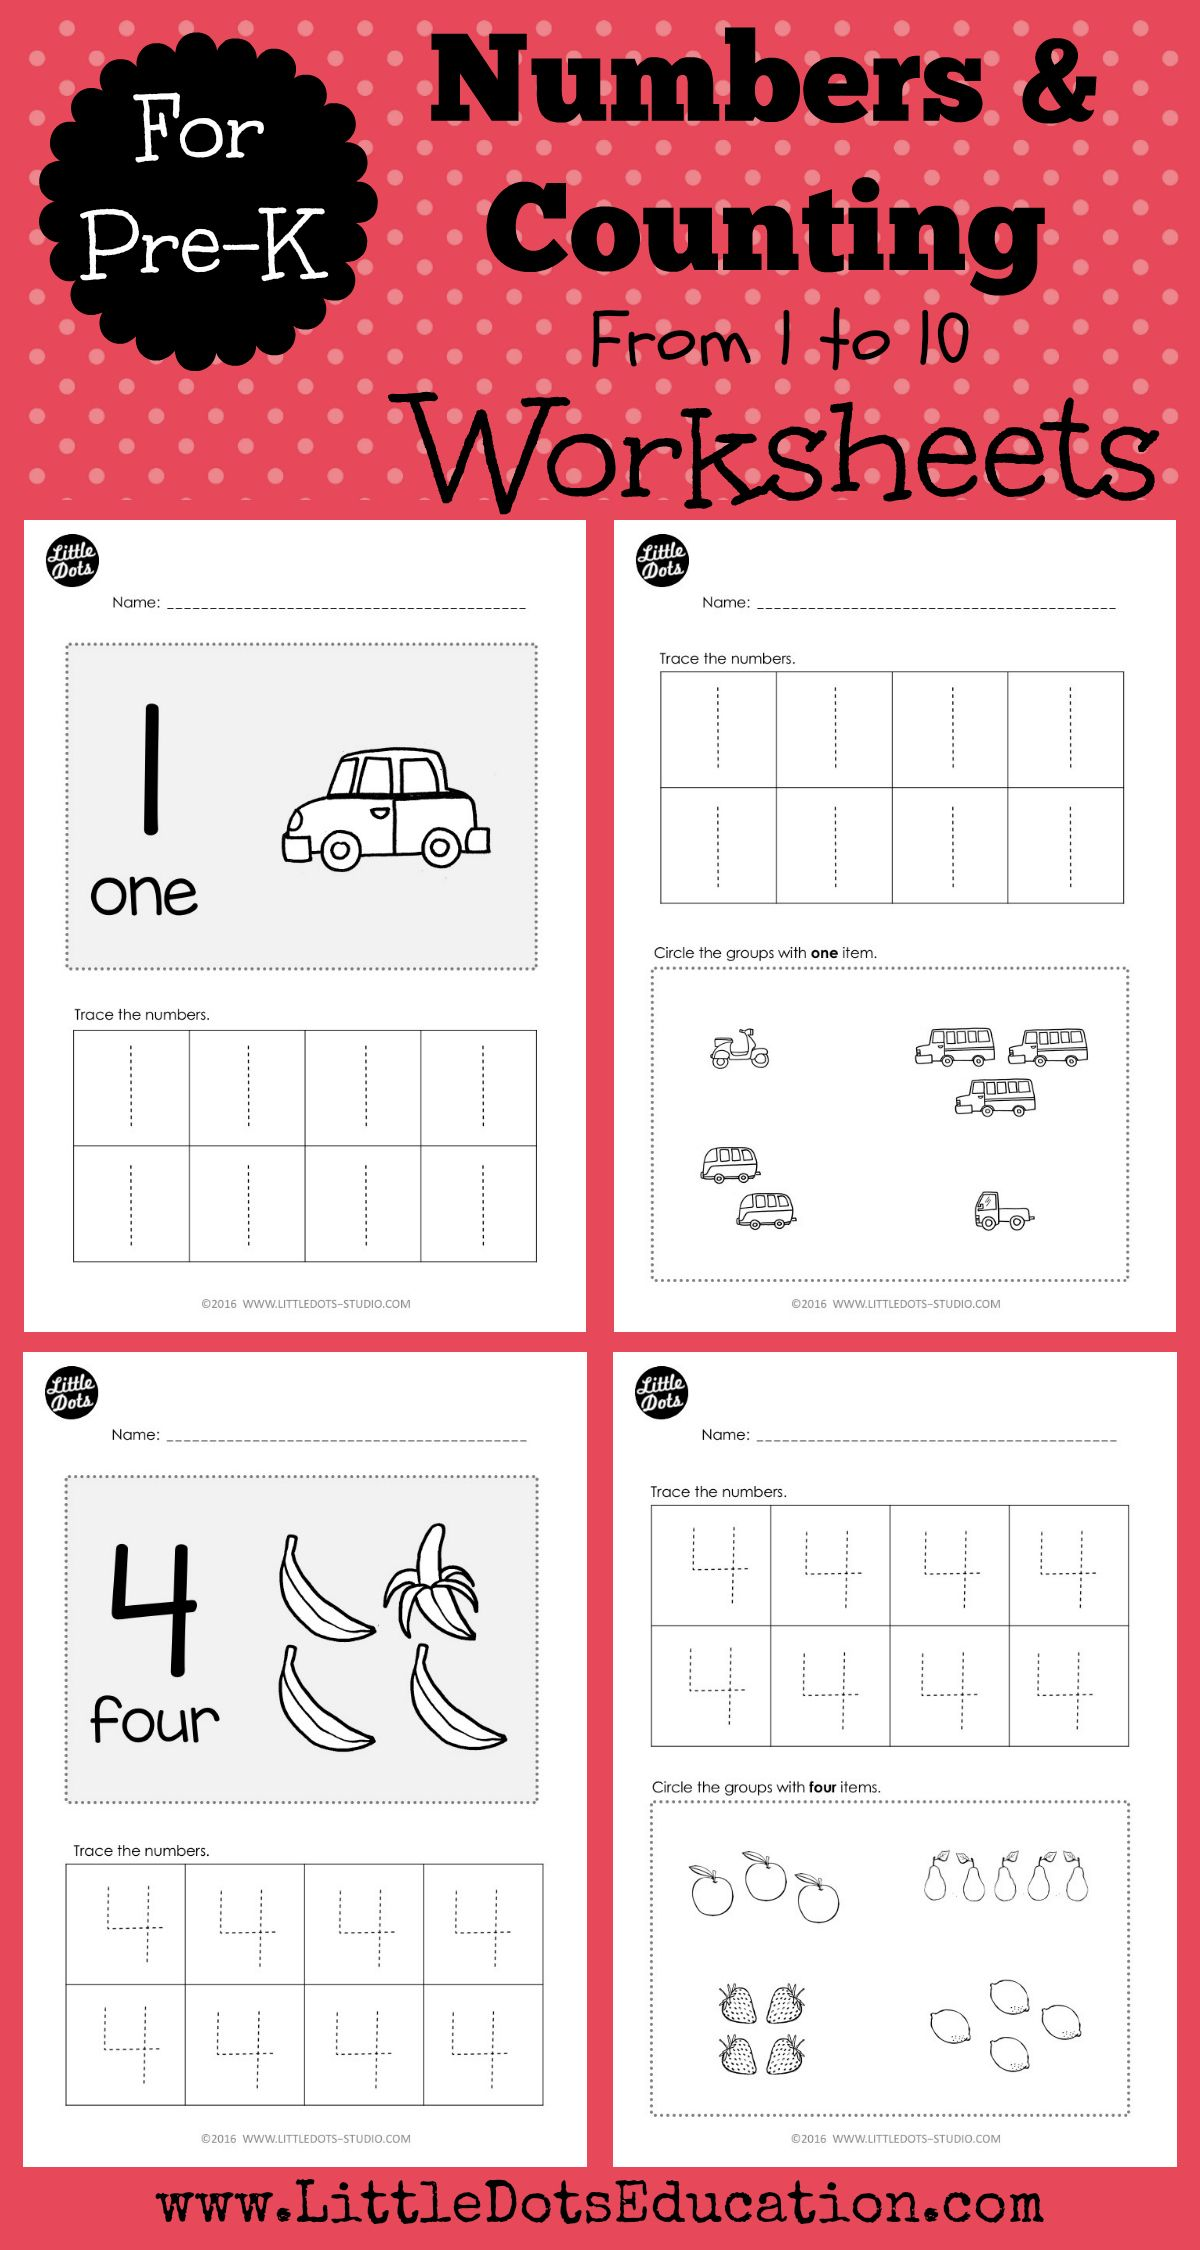 Download Numbers Worksheets And Activities For Pre K Or Preschool Level Practice To Trace And